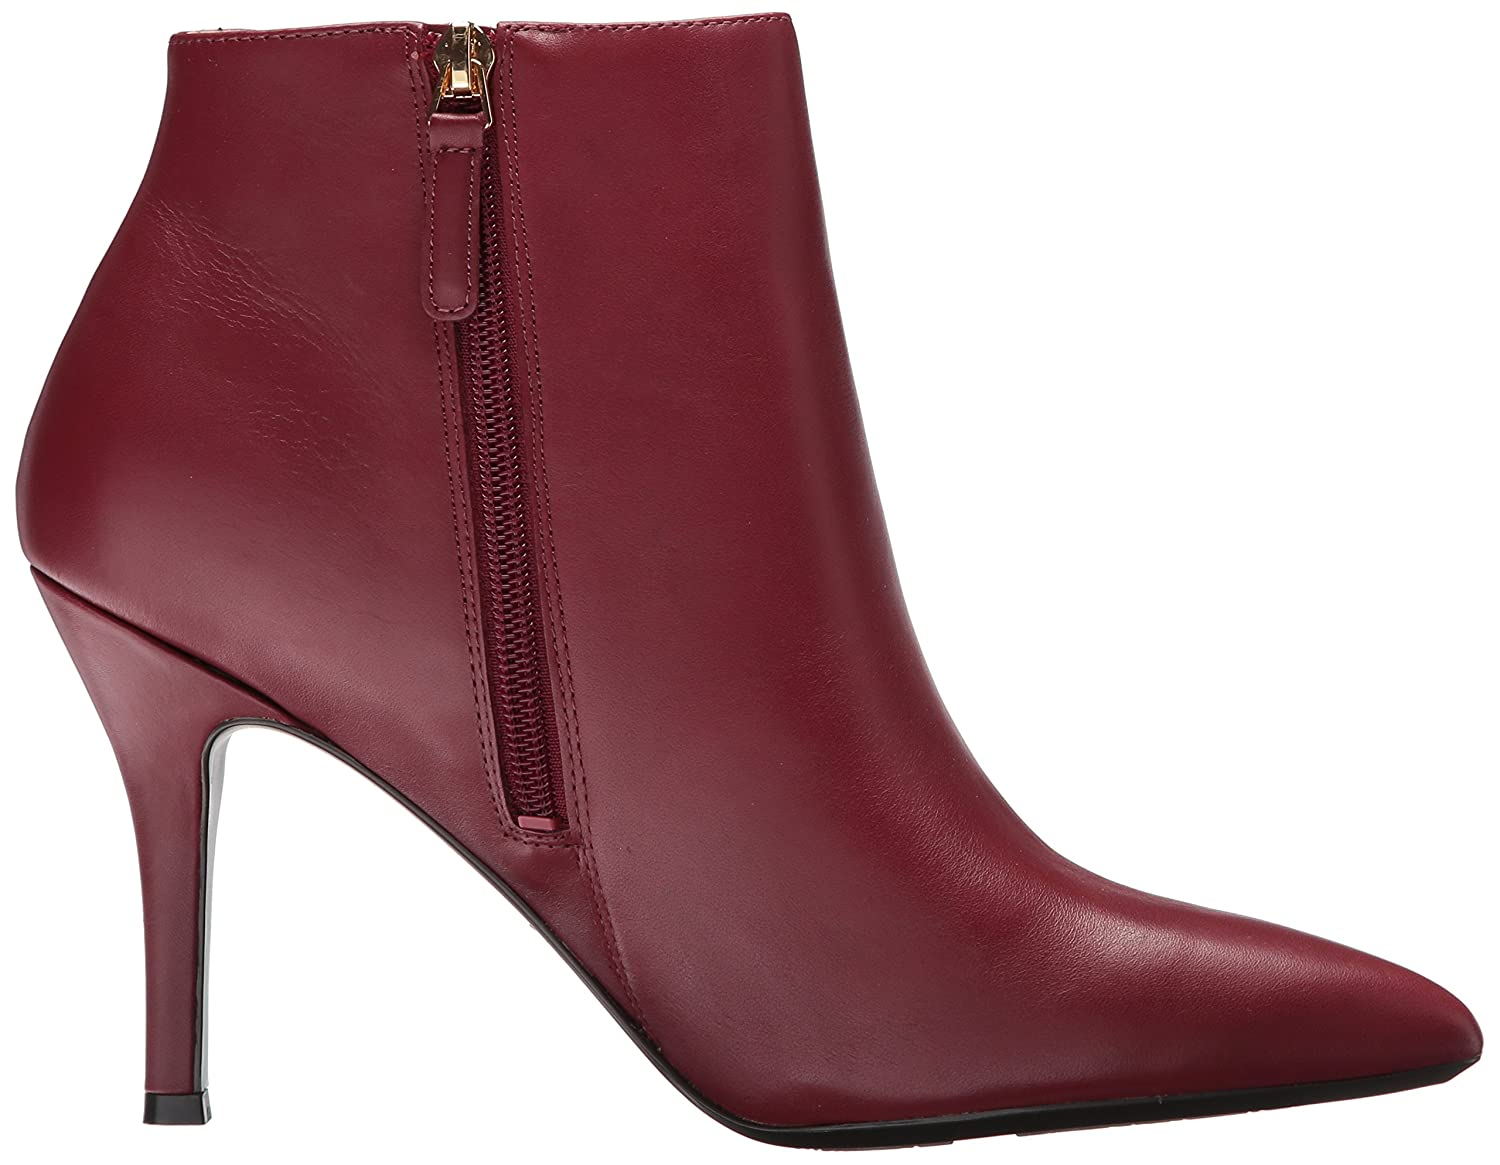 Nine West Women's Front9x9 B07146Y4JM 10 B(M) US|Wine/Wine Leather